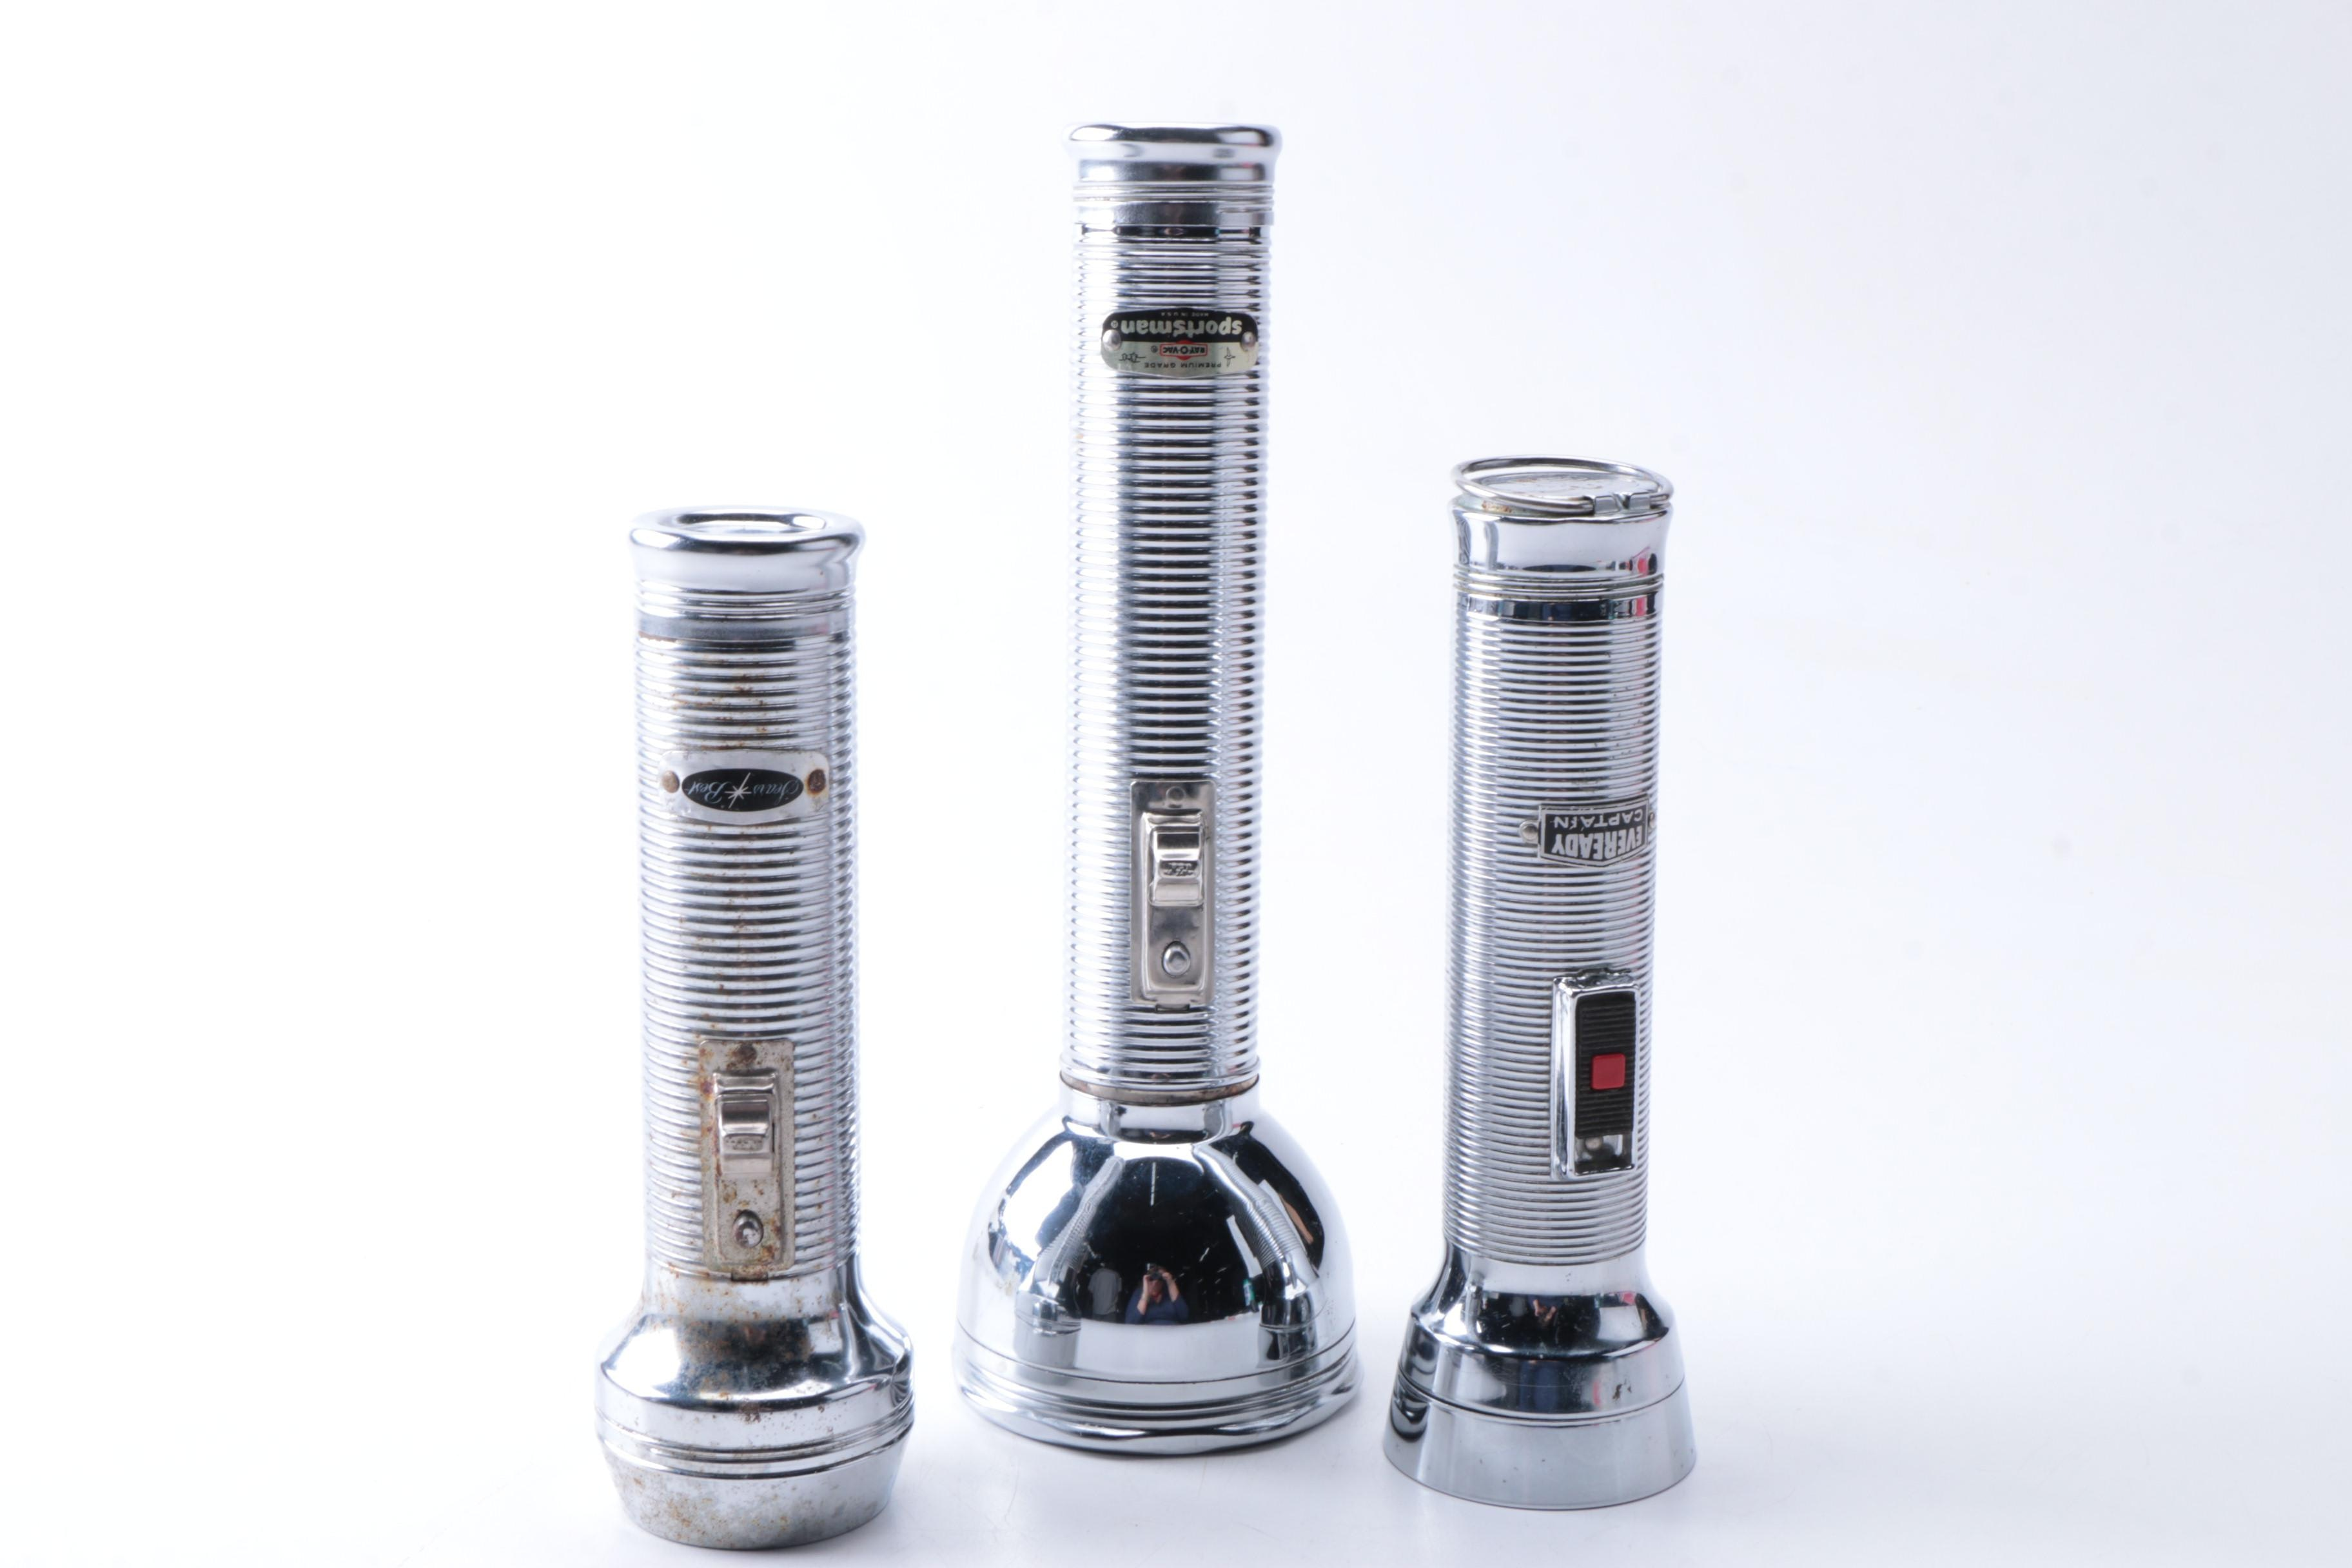 Vintage Flashlights, Including Eveready and Ray-O-Vac